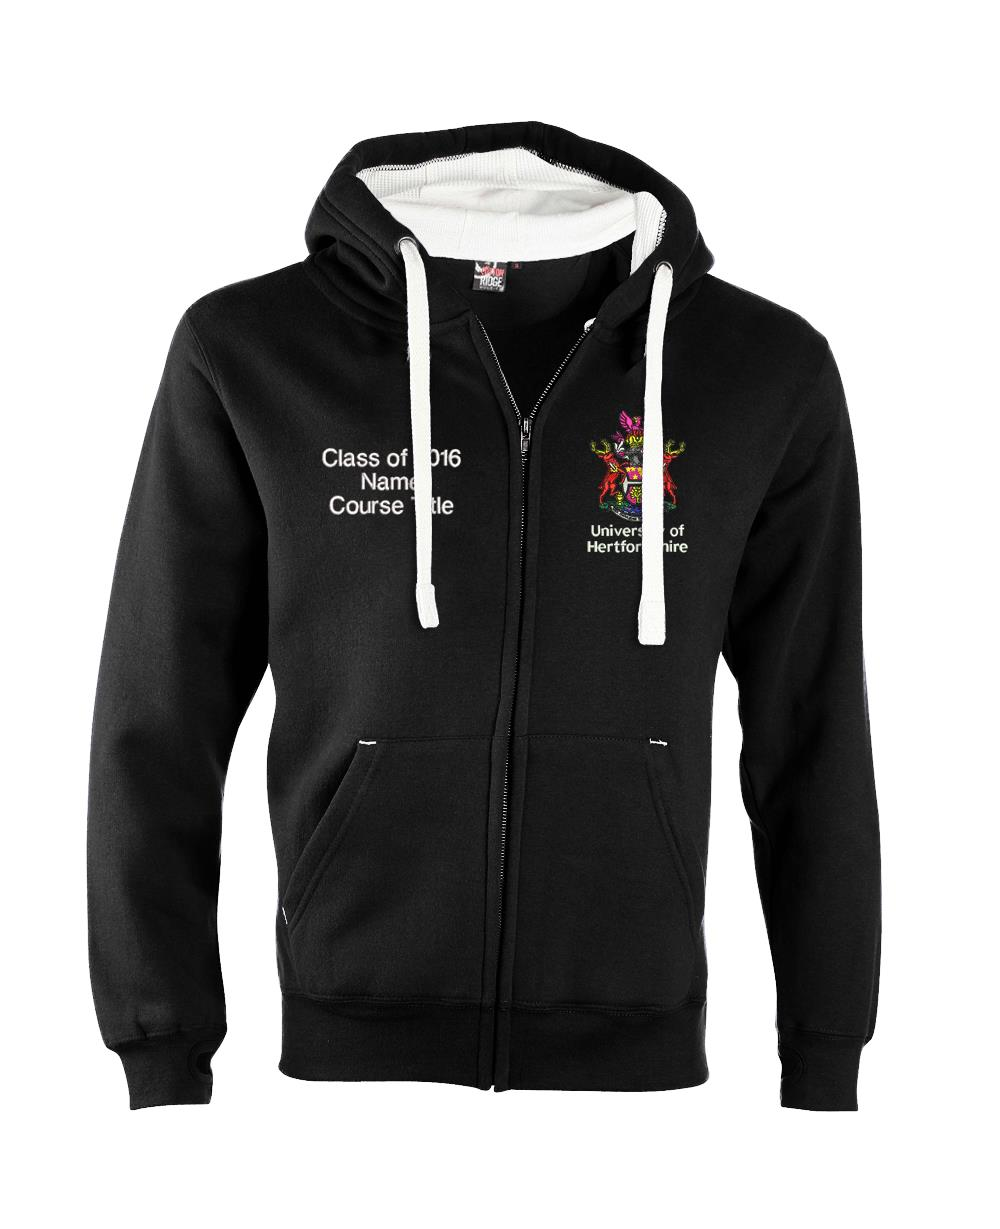 W81PF-Embroidered Ultra-Premium Graduation Zip Hoodie-Hertfordshire Ultra Soft Feel Hooded Top